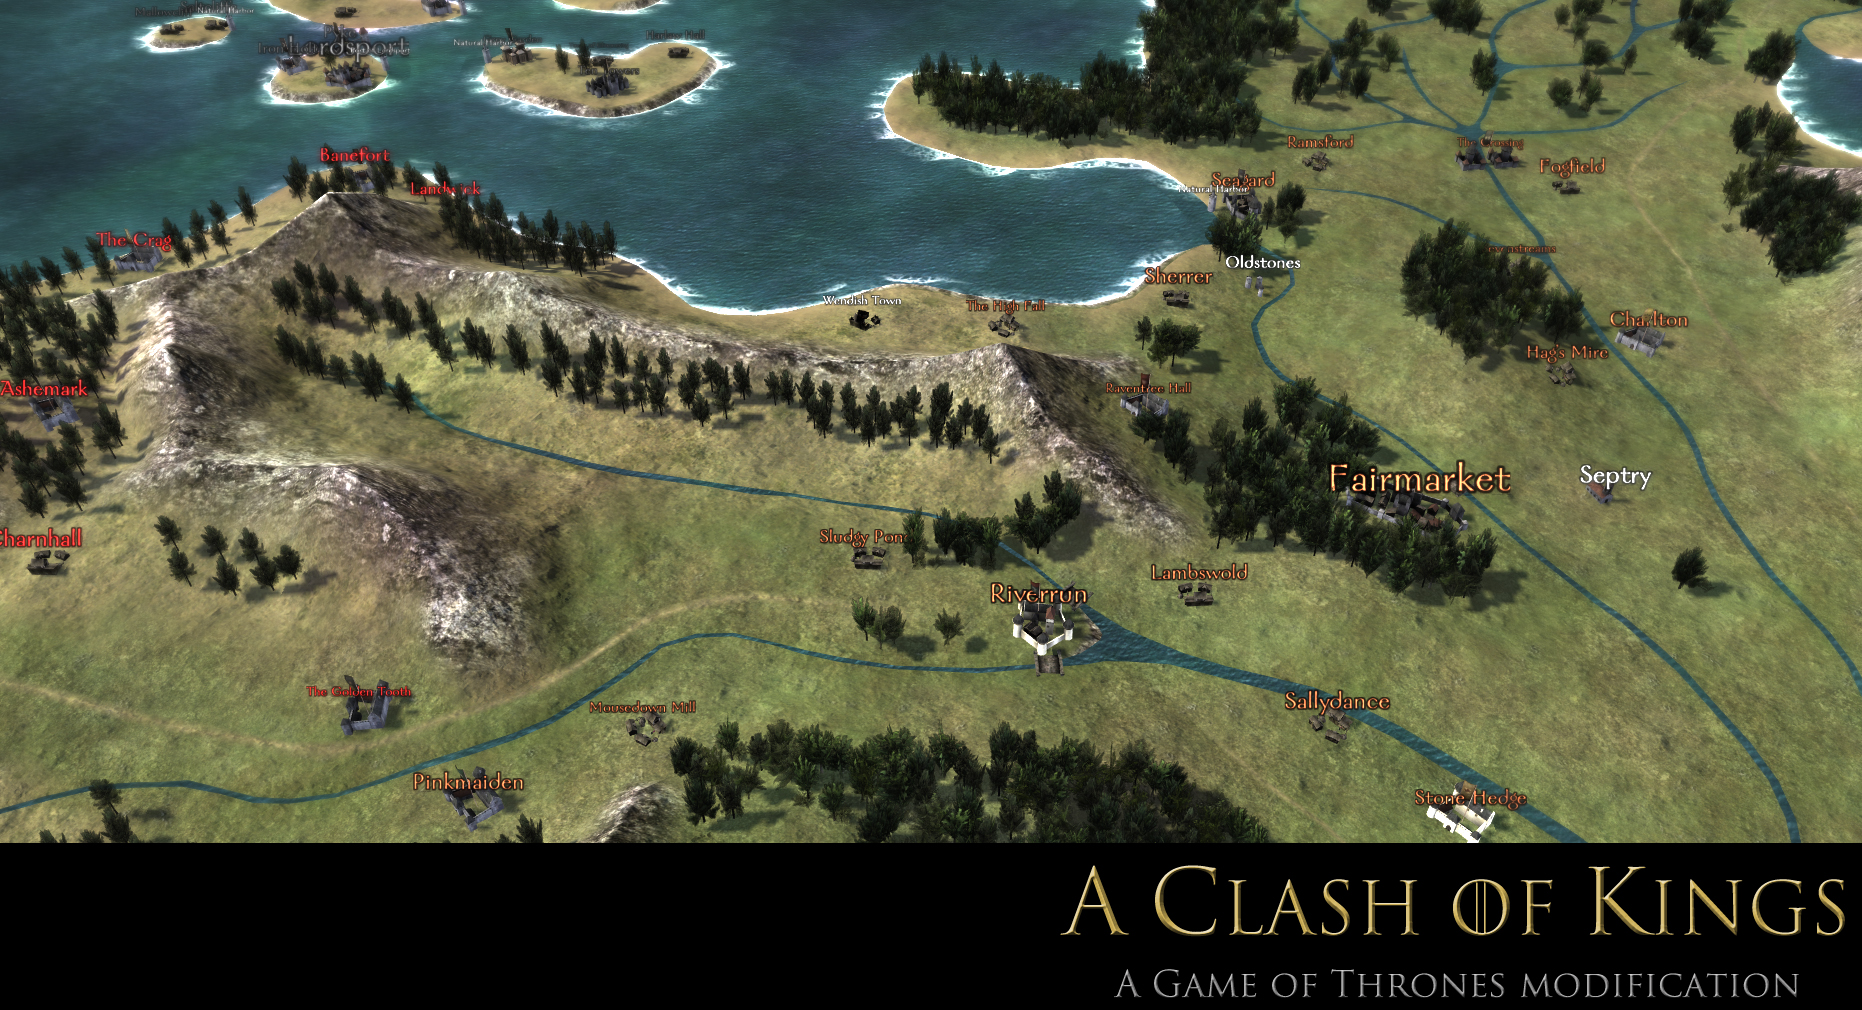 World map image a clash of kings game of thrones mod for mount add media report rss world map view original gumiabroncs Choice Image